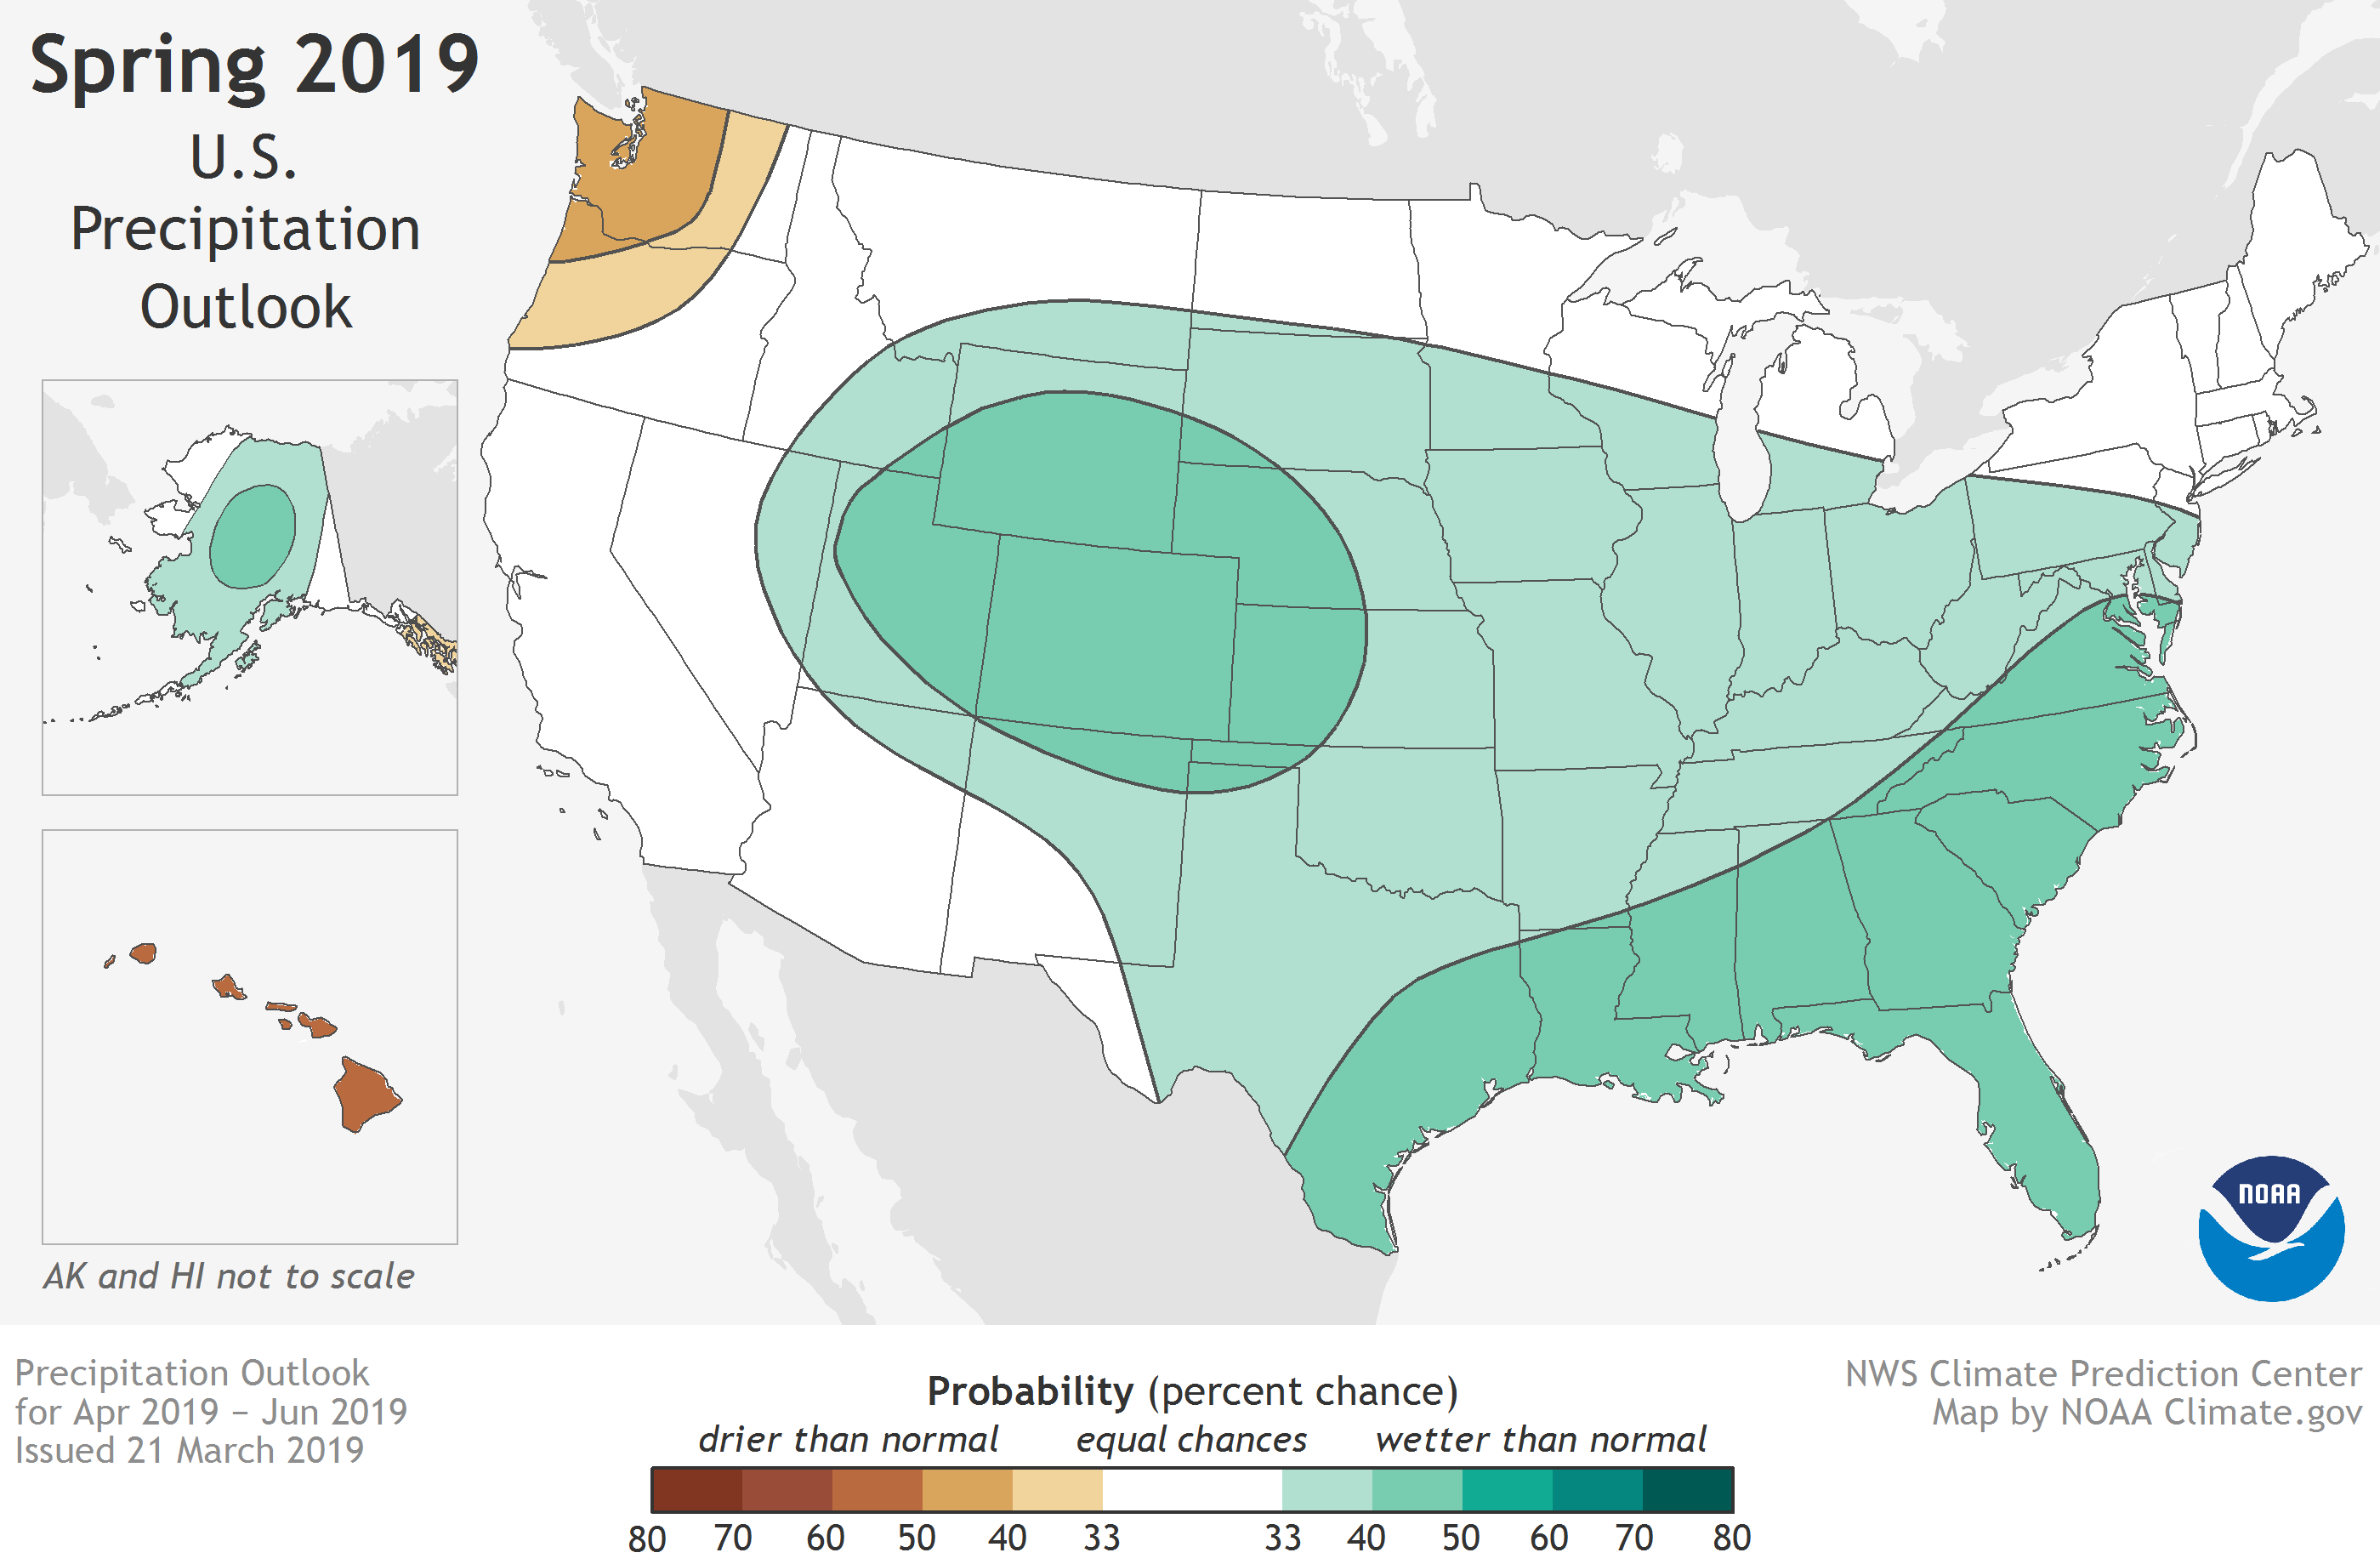 Us Flood Map Global Warming U.S. flood and climate outlook for spring 2019 | NOAA Climate.gov